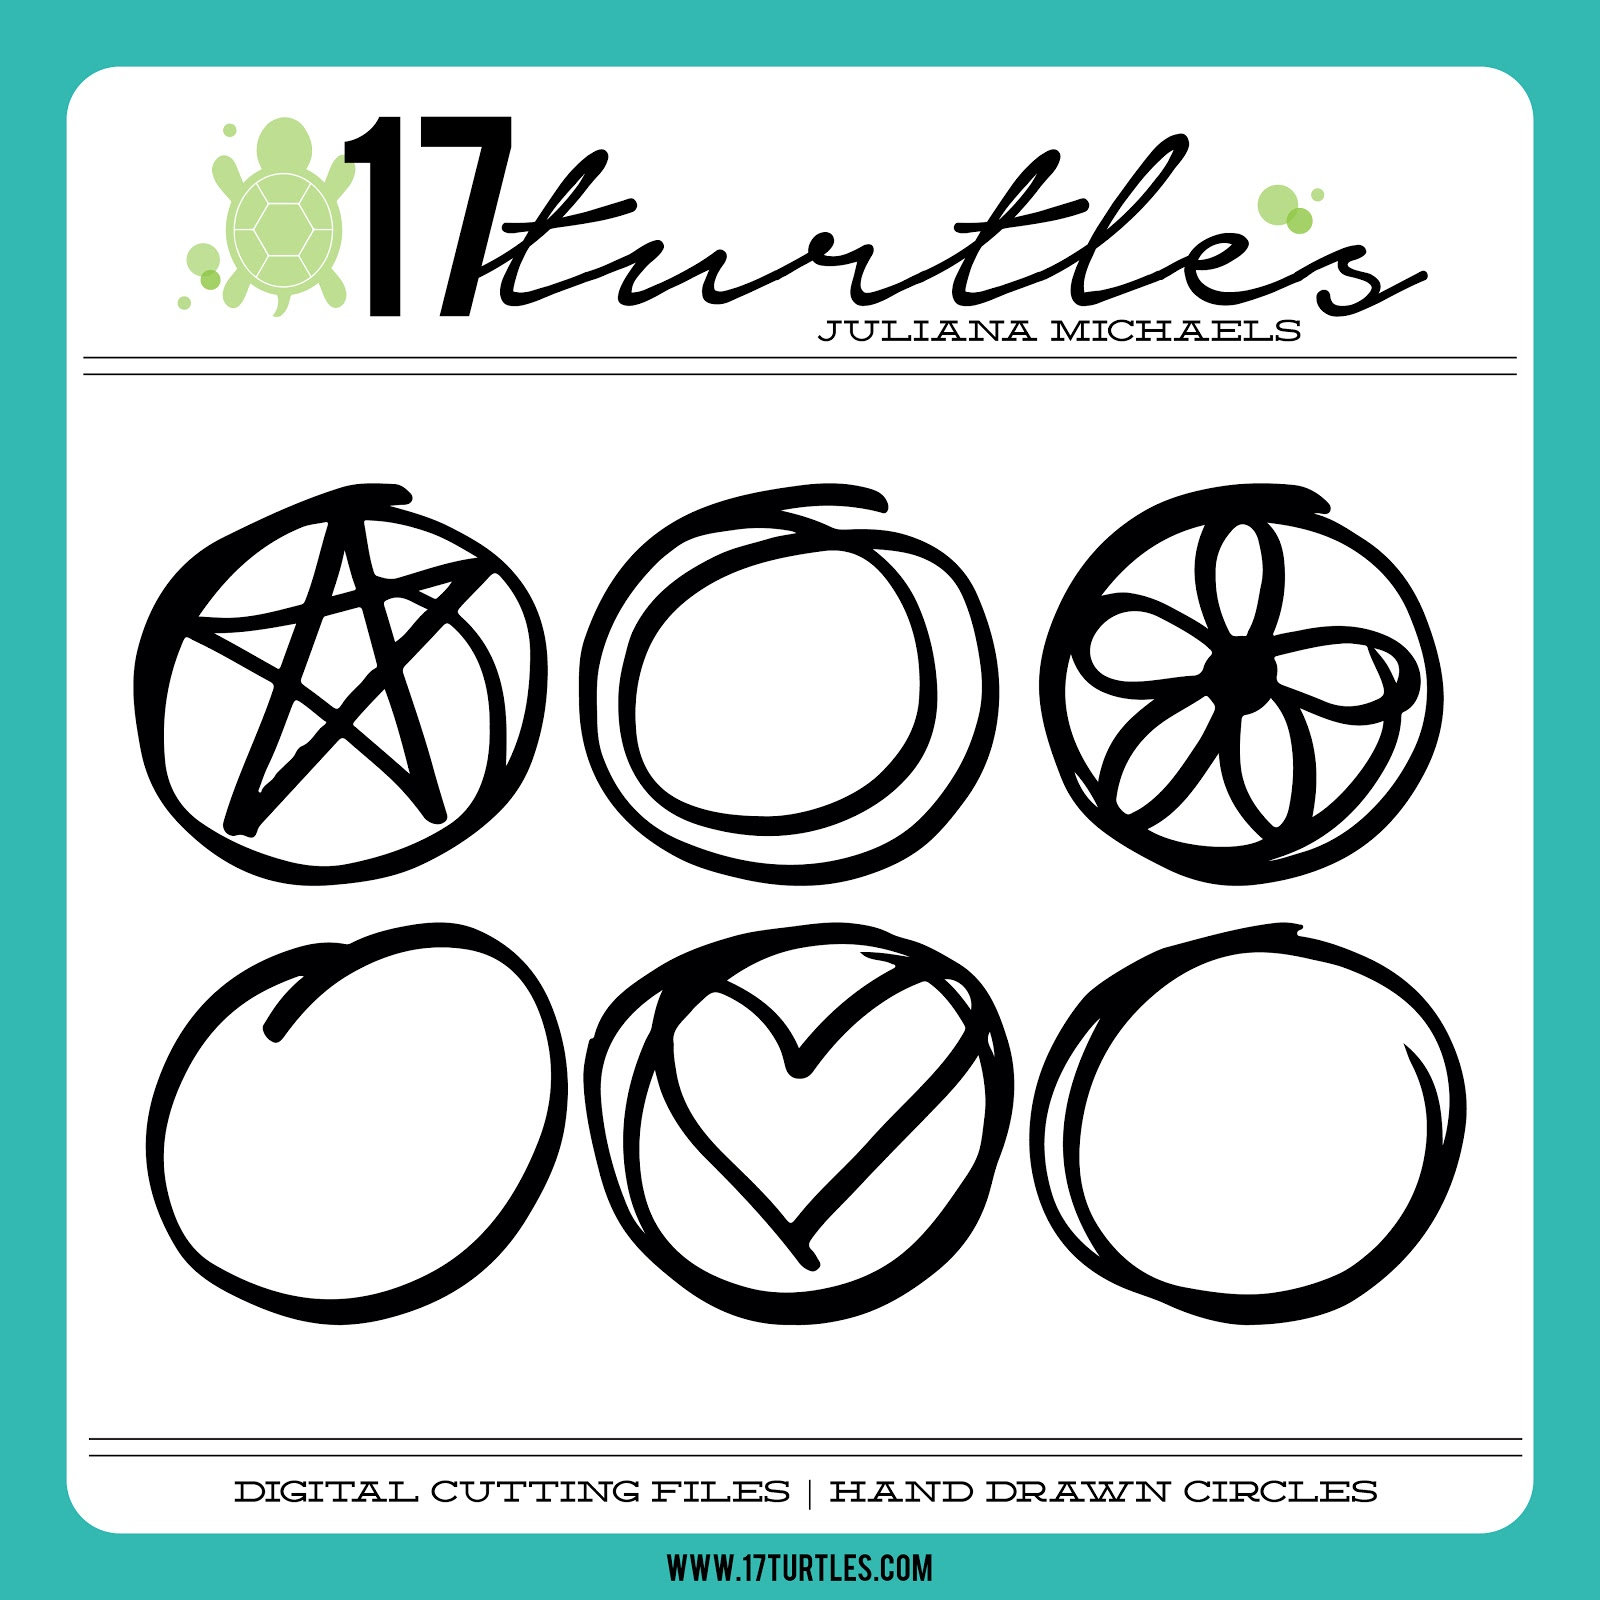 17turtles Digital Cut Files Hand Drawn Circles